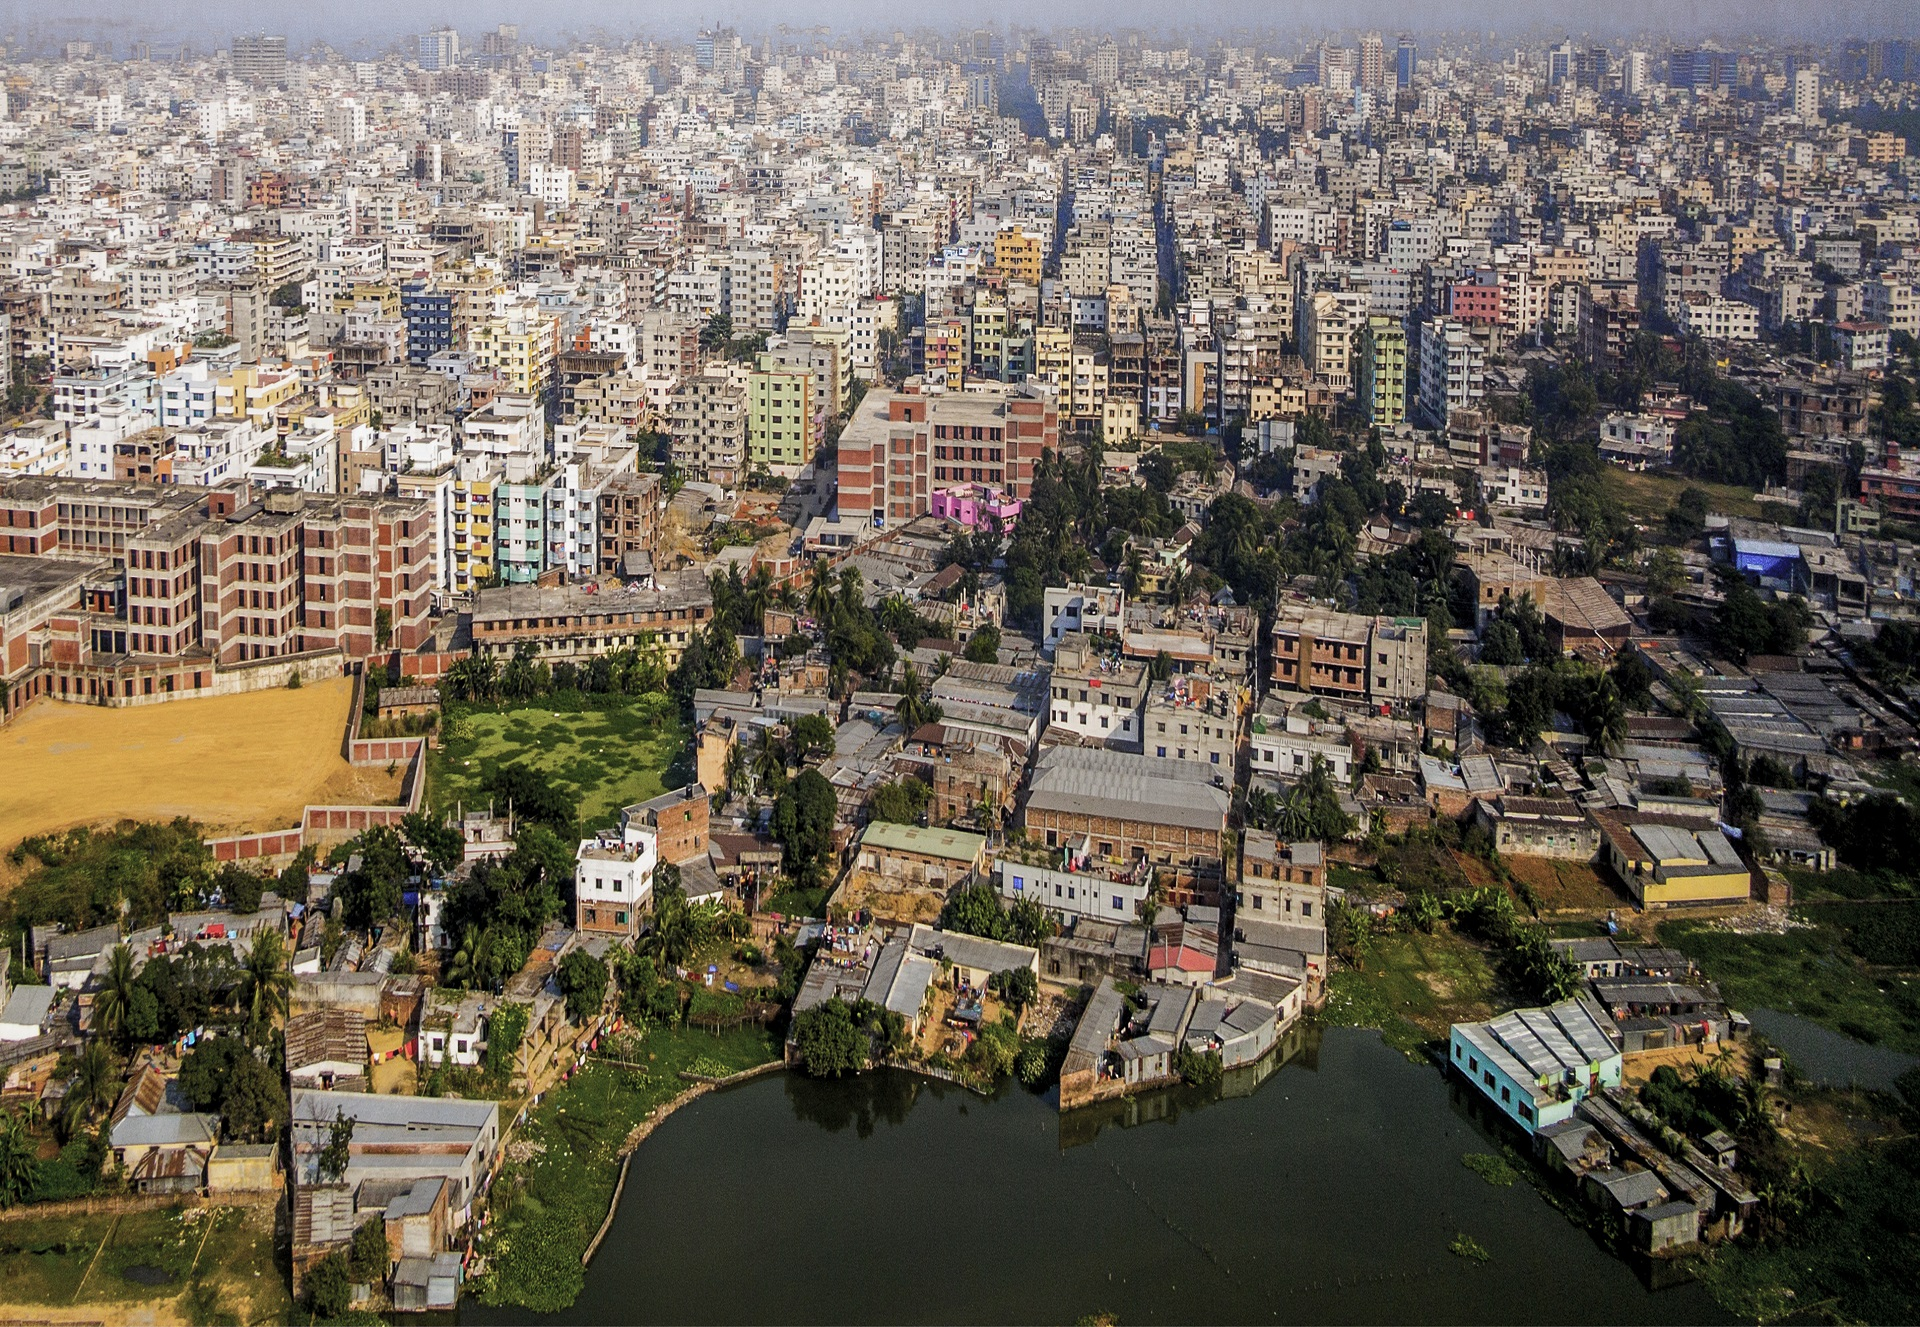 Dhaka in Bangladesh